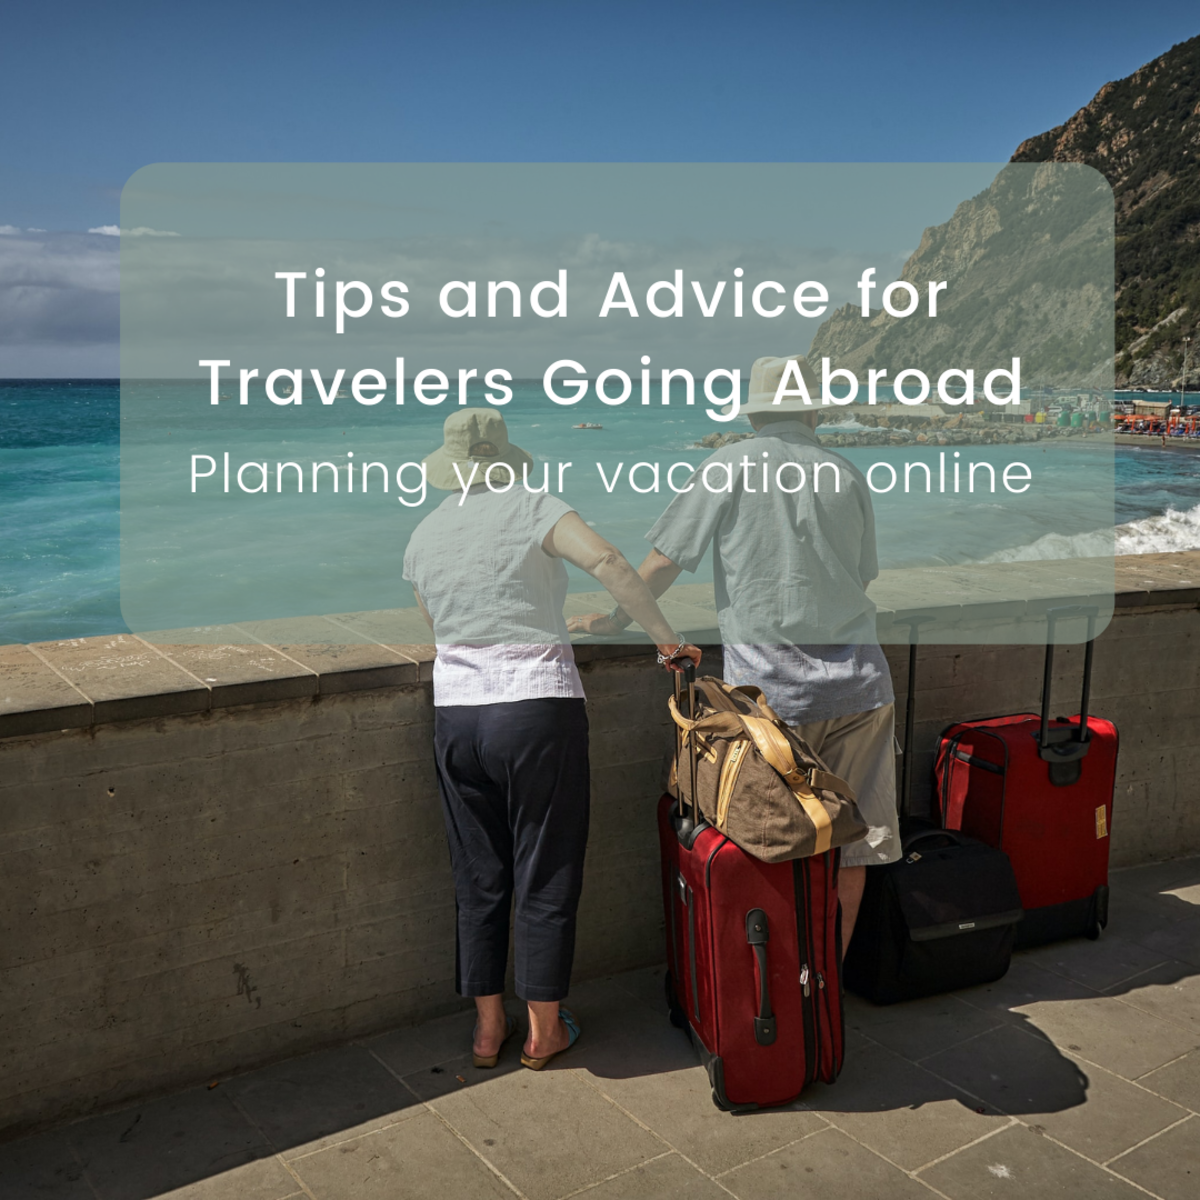 Tips and Advice for Travelers Going Abroad